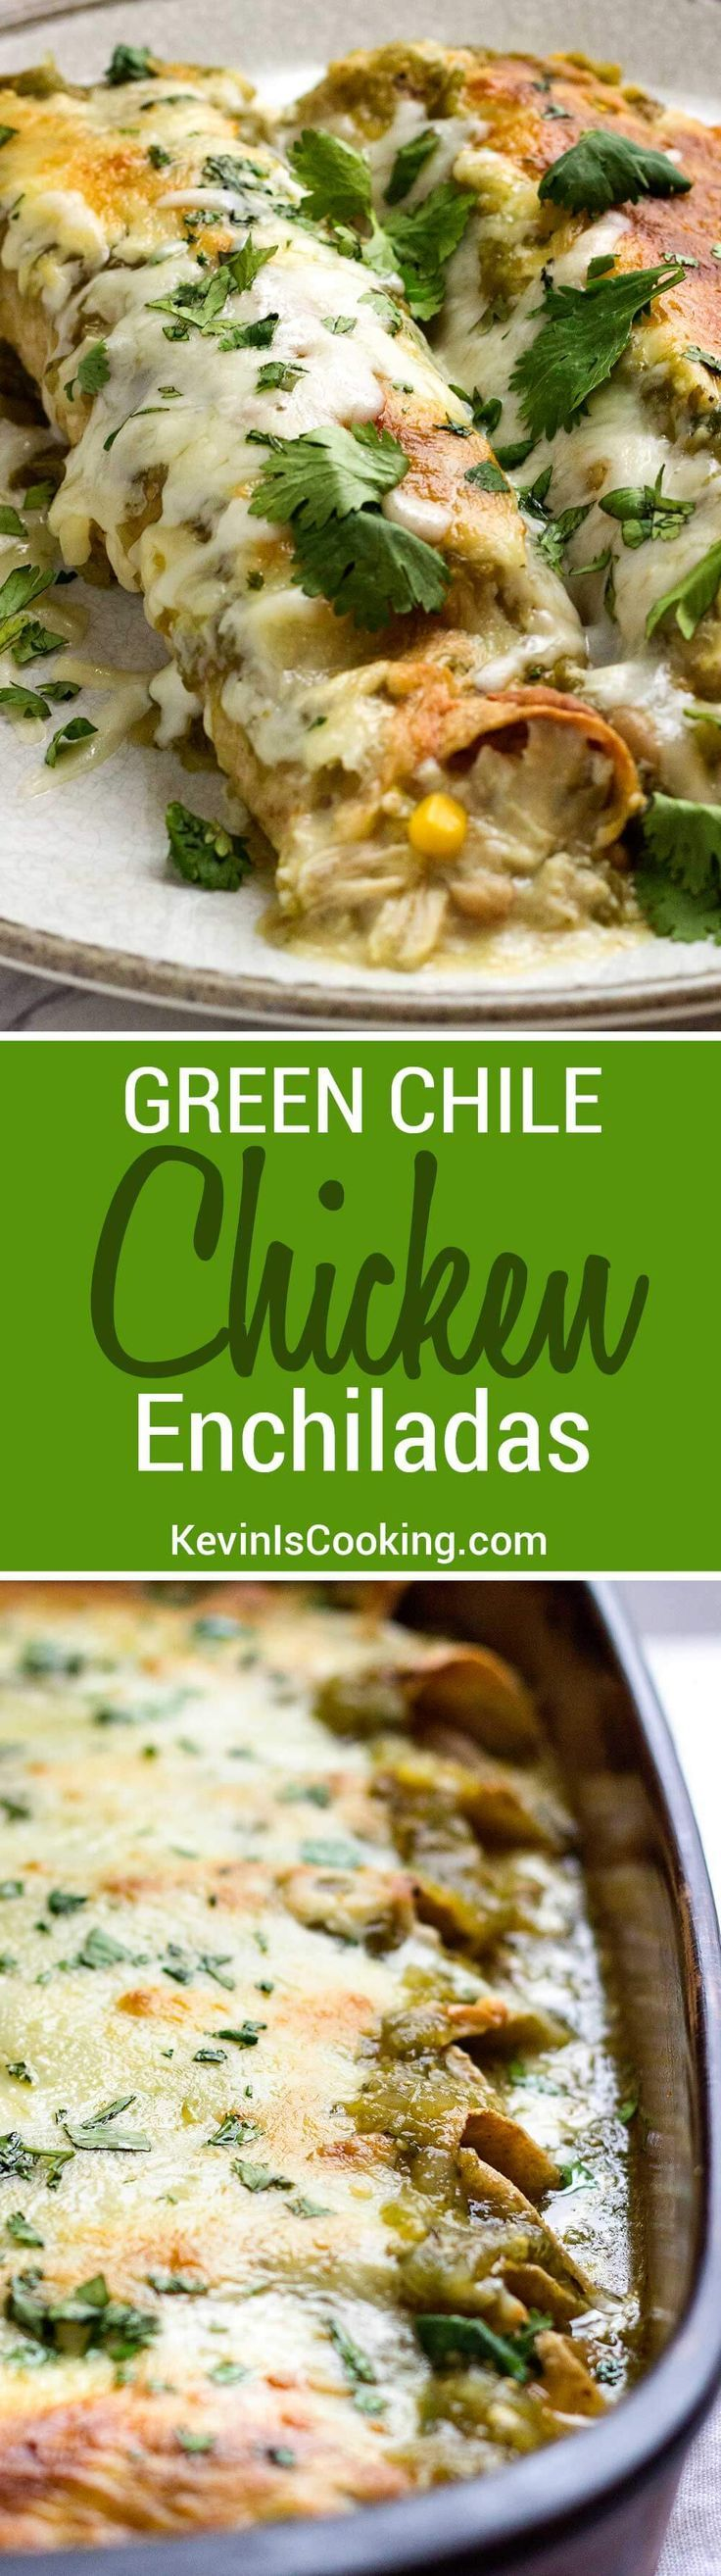 These Green Chile Chicken Enchiladas use shredded rotisserie chicken, white beans, corn and plenty of Pepper Jack cheese then are smothered in a green salsa verde. Super easy to put together and are g (Shredded Chicken Chili)